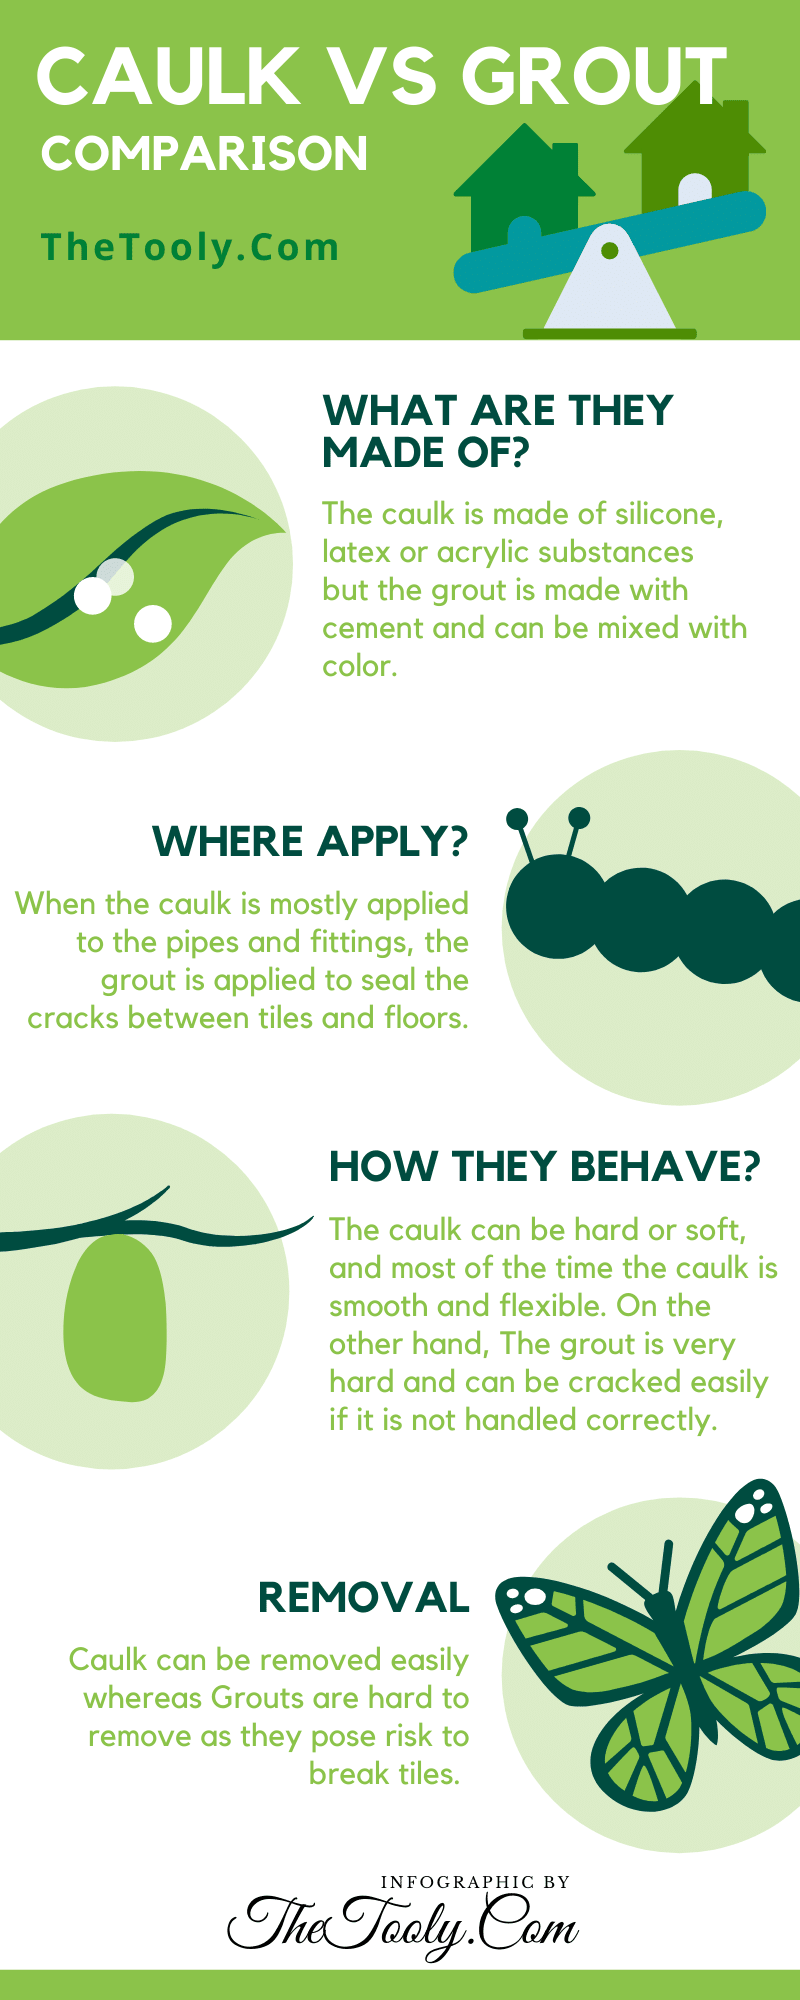 caulk vs grout infographic by The Tooly